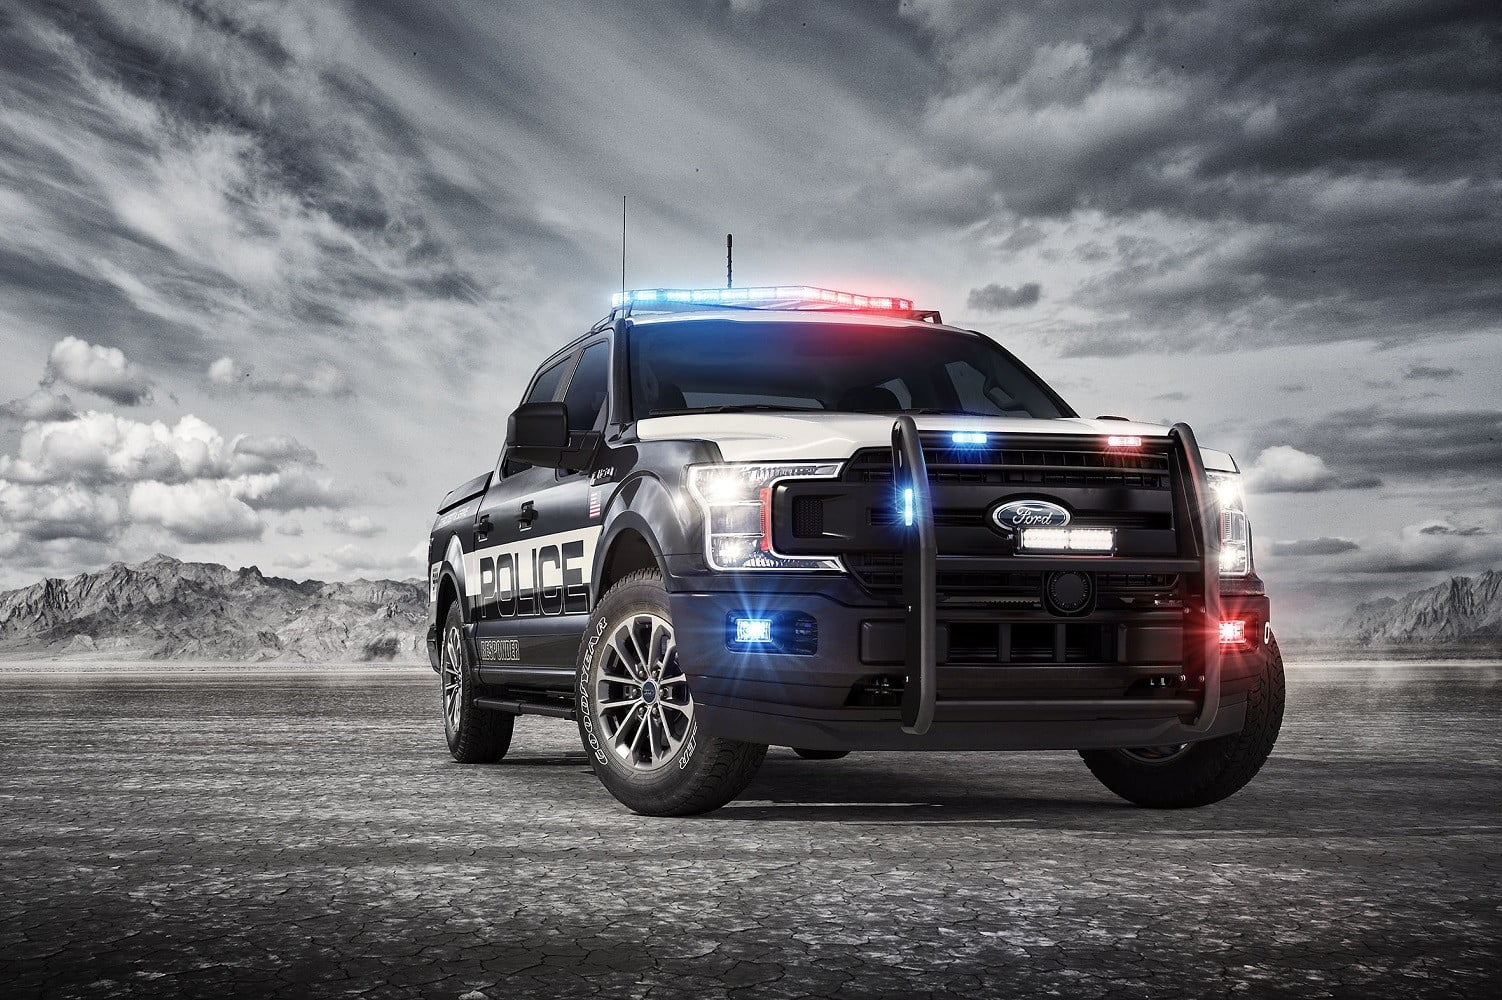 Ford Patent Filing Outlines a Self-Driving Police Car